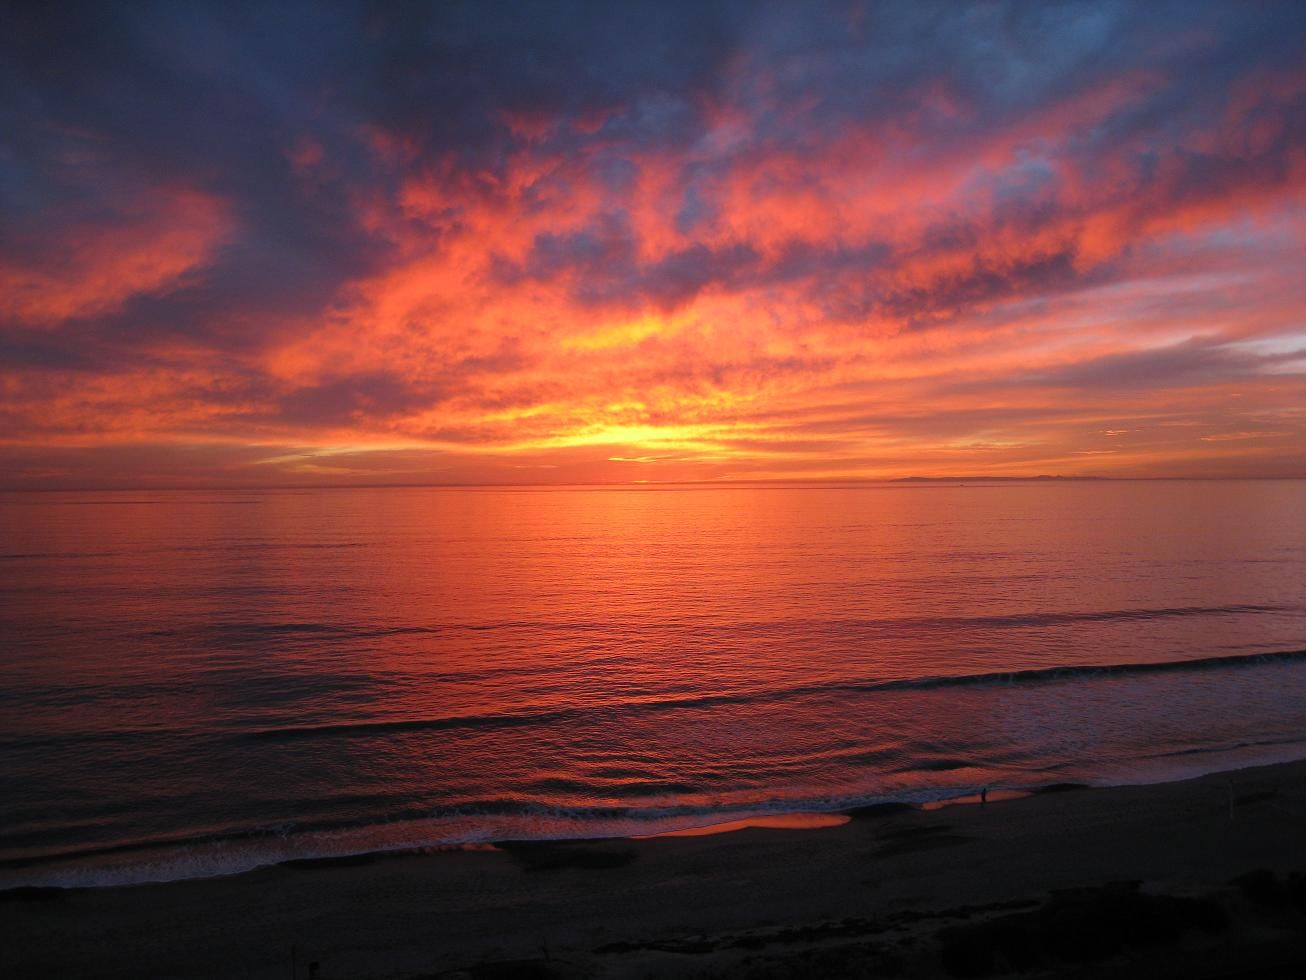 If You Like Romantic Sunsets Youll Love This California Beach Sunset Photo With An